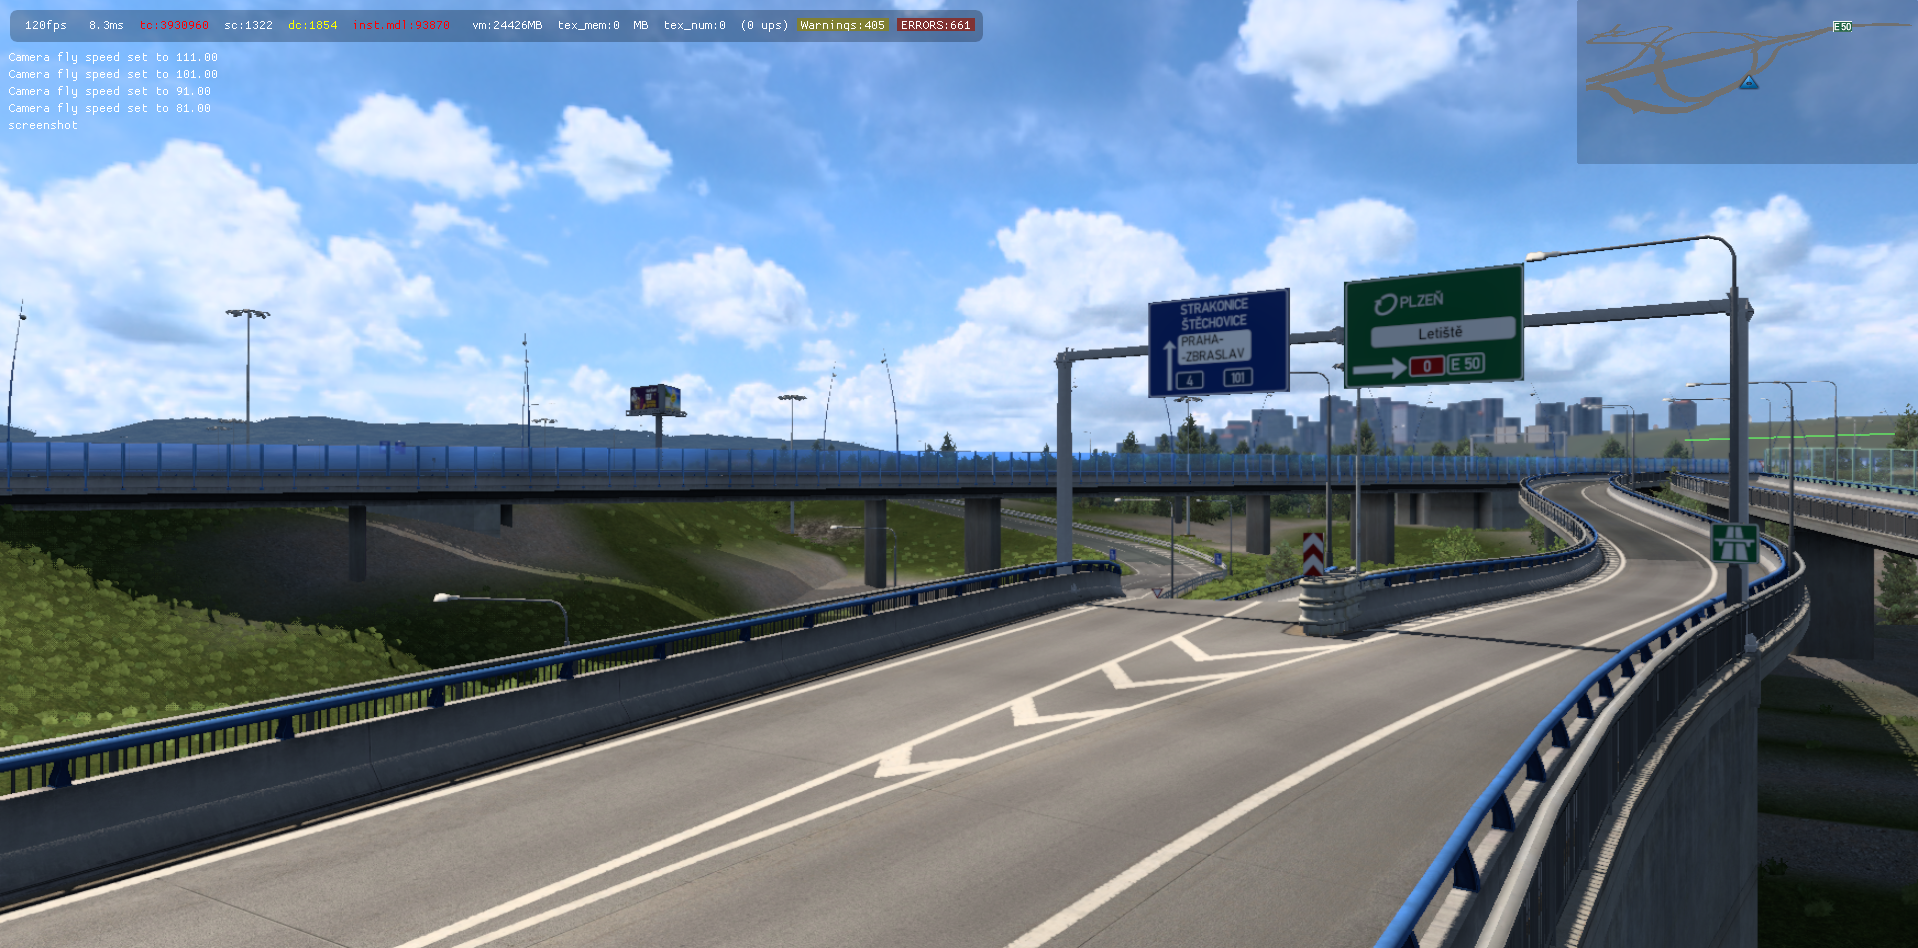 ets2_20210730_000557_00.png